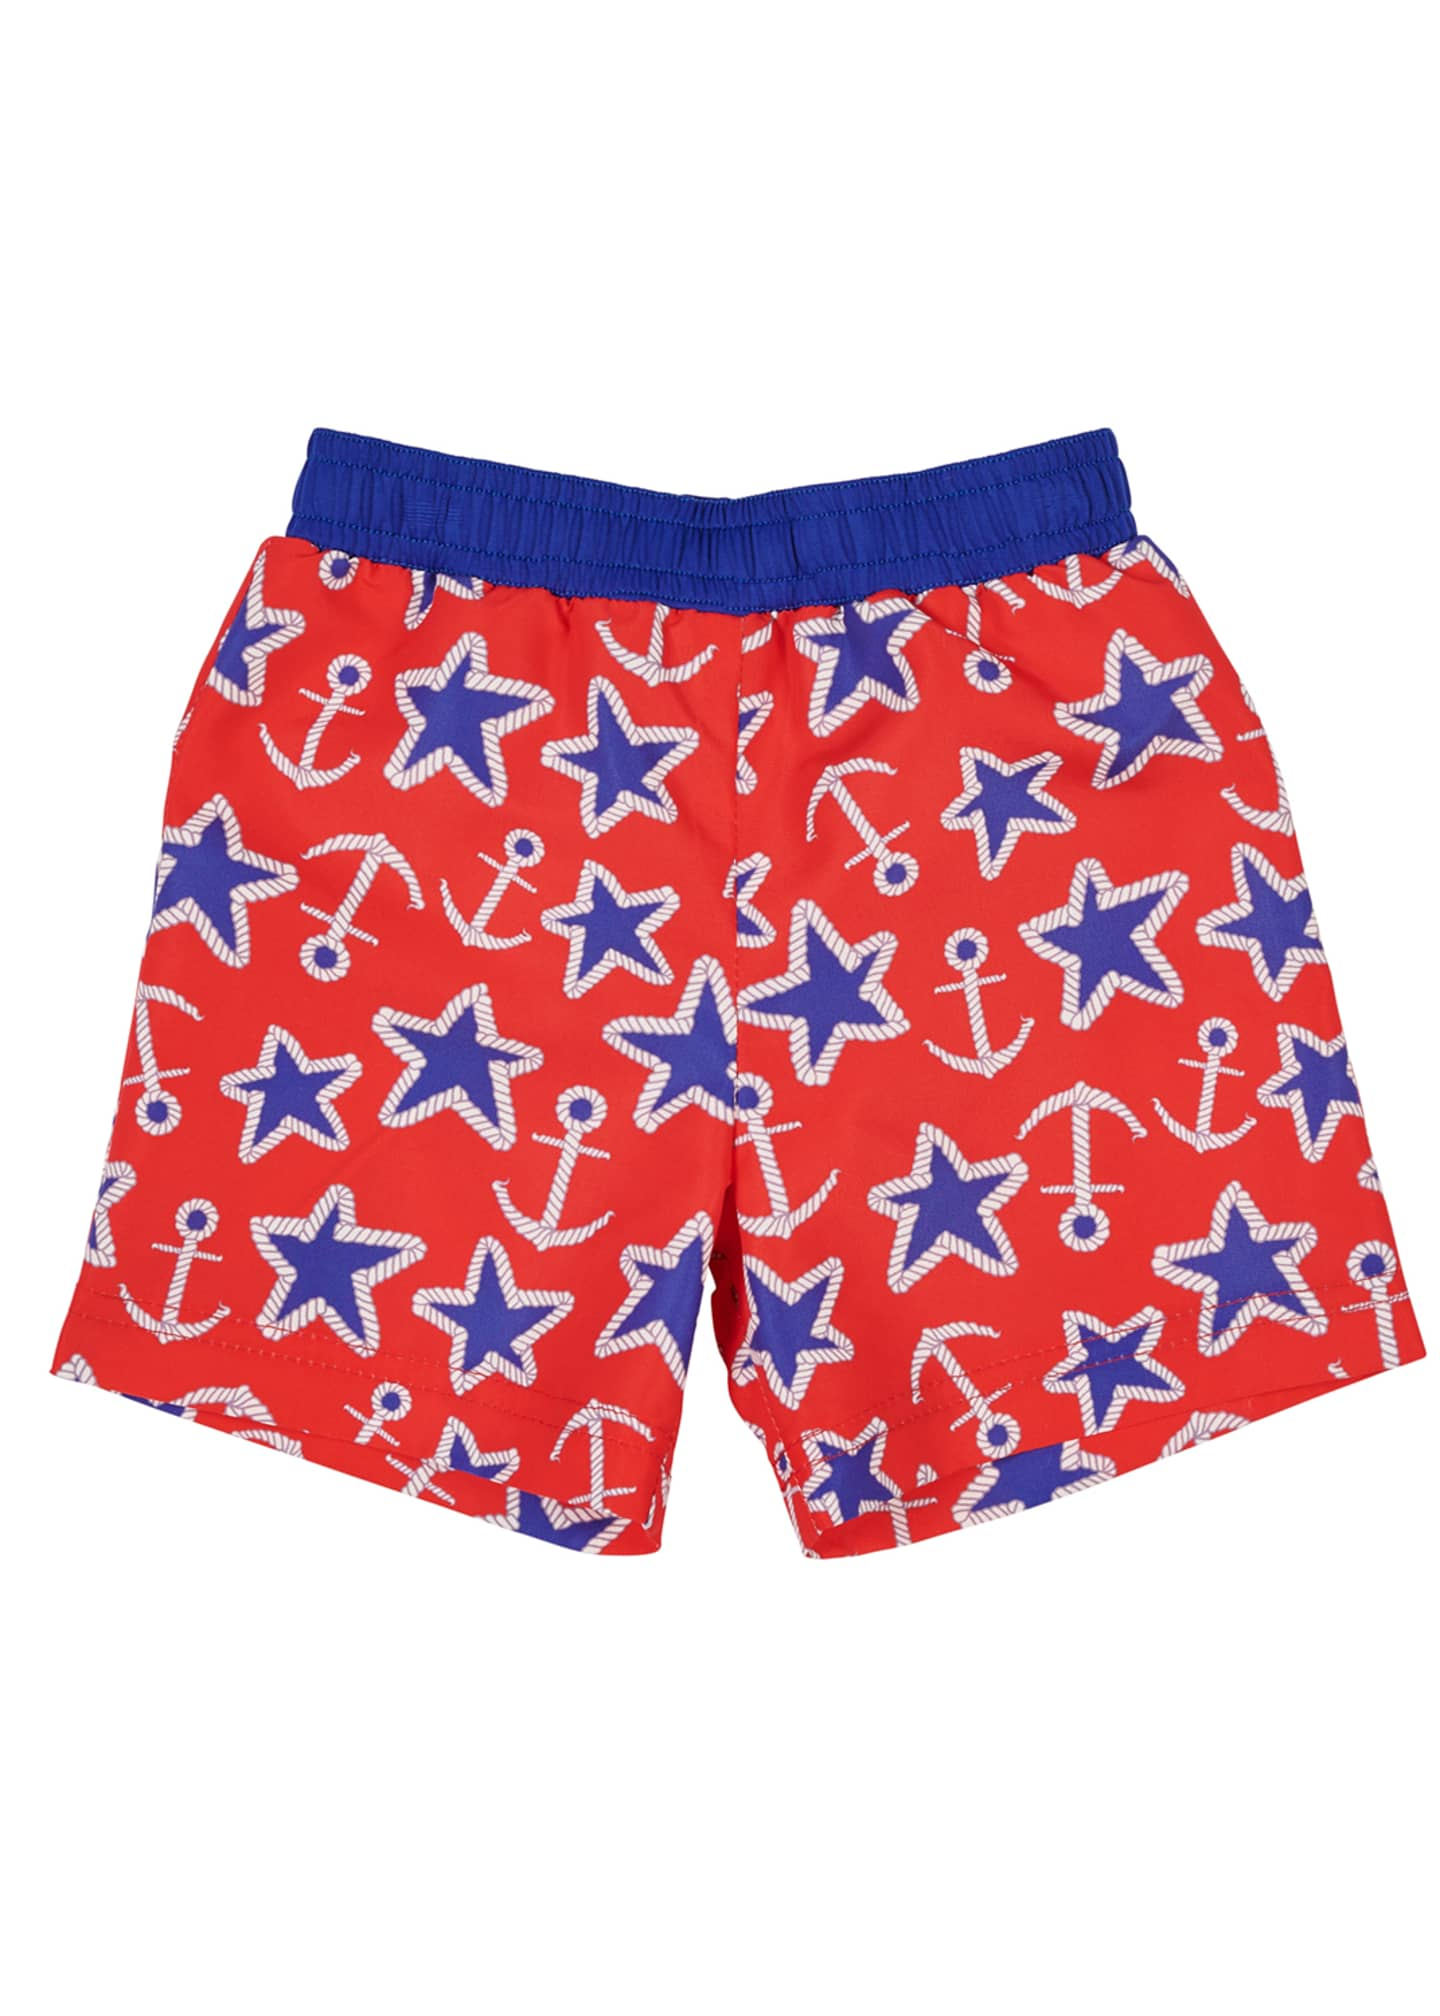 Florence Eiseman Anchor Star-Print Swim Trunks, Size 6-24